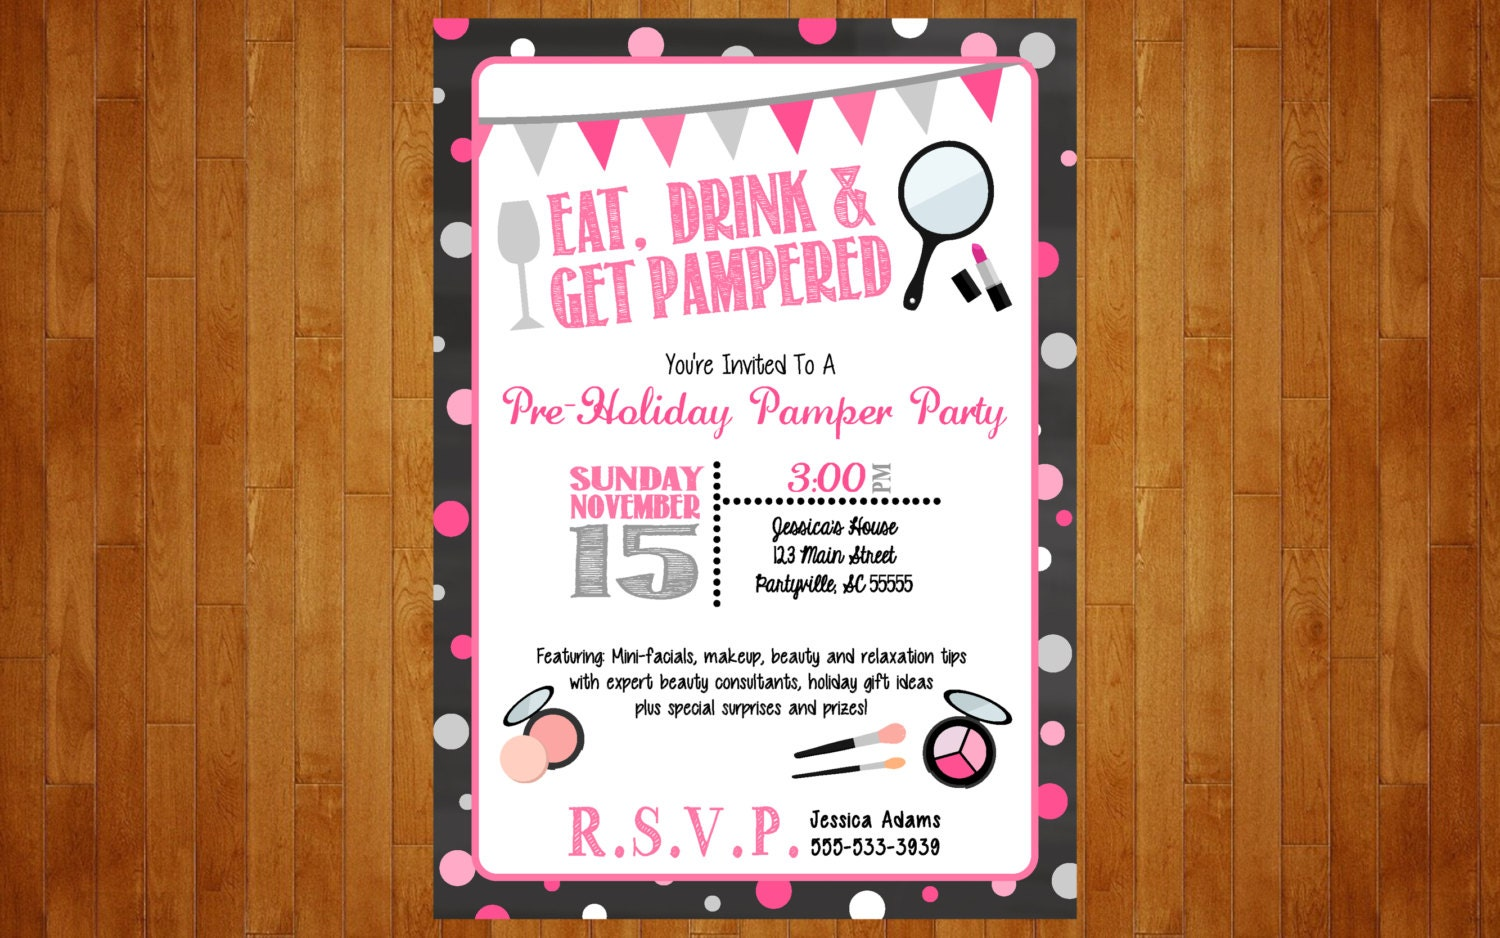 Make Up Party Invitation Or Lingerie Bachelorette Spa Pamper Invitation Mary Kay Avon Party Invitation Pink And Black Invite Digital File